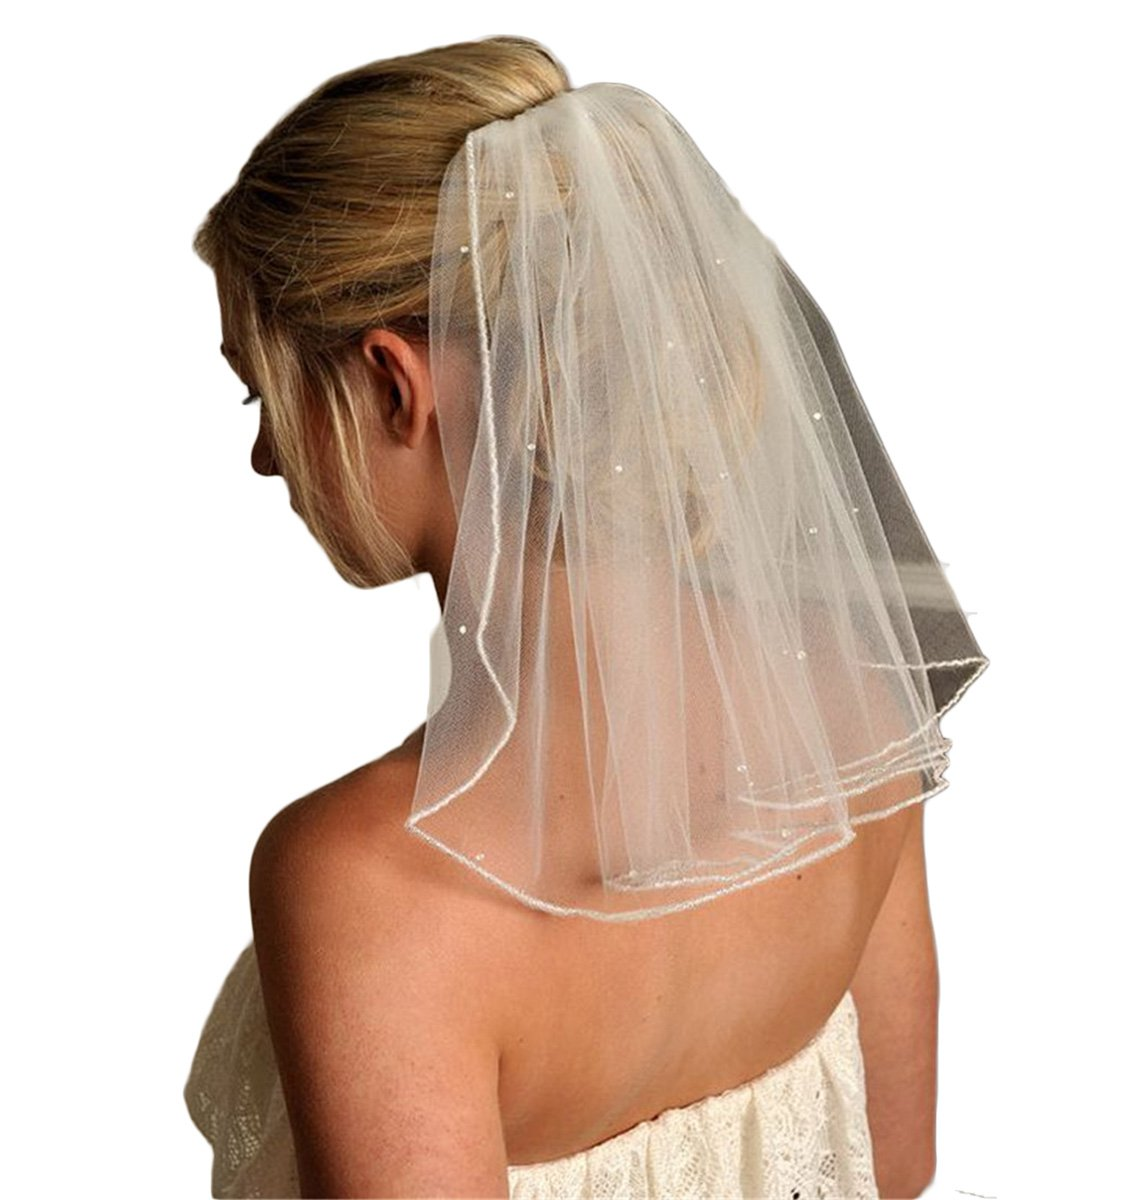 Veilbridal Short Single Tier Bridal Wedding Veils With Beads First Communion Veils (Ivory)